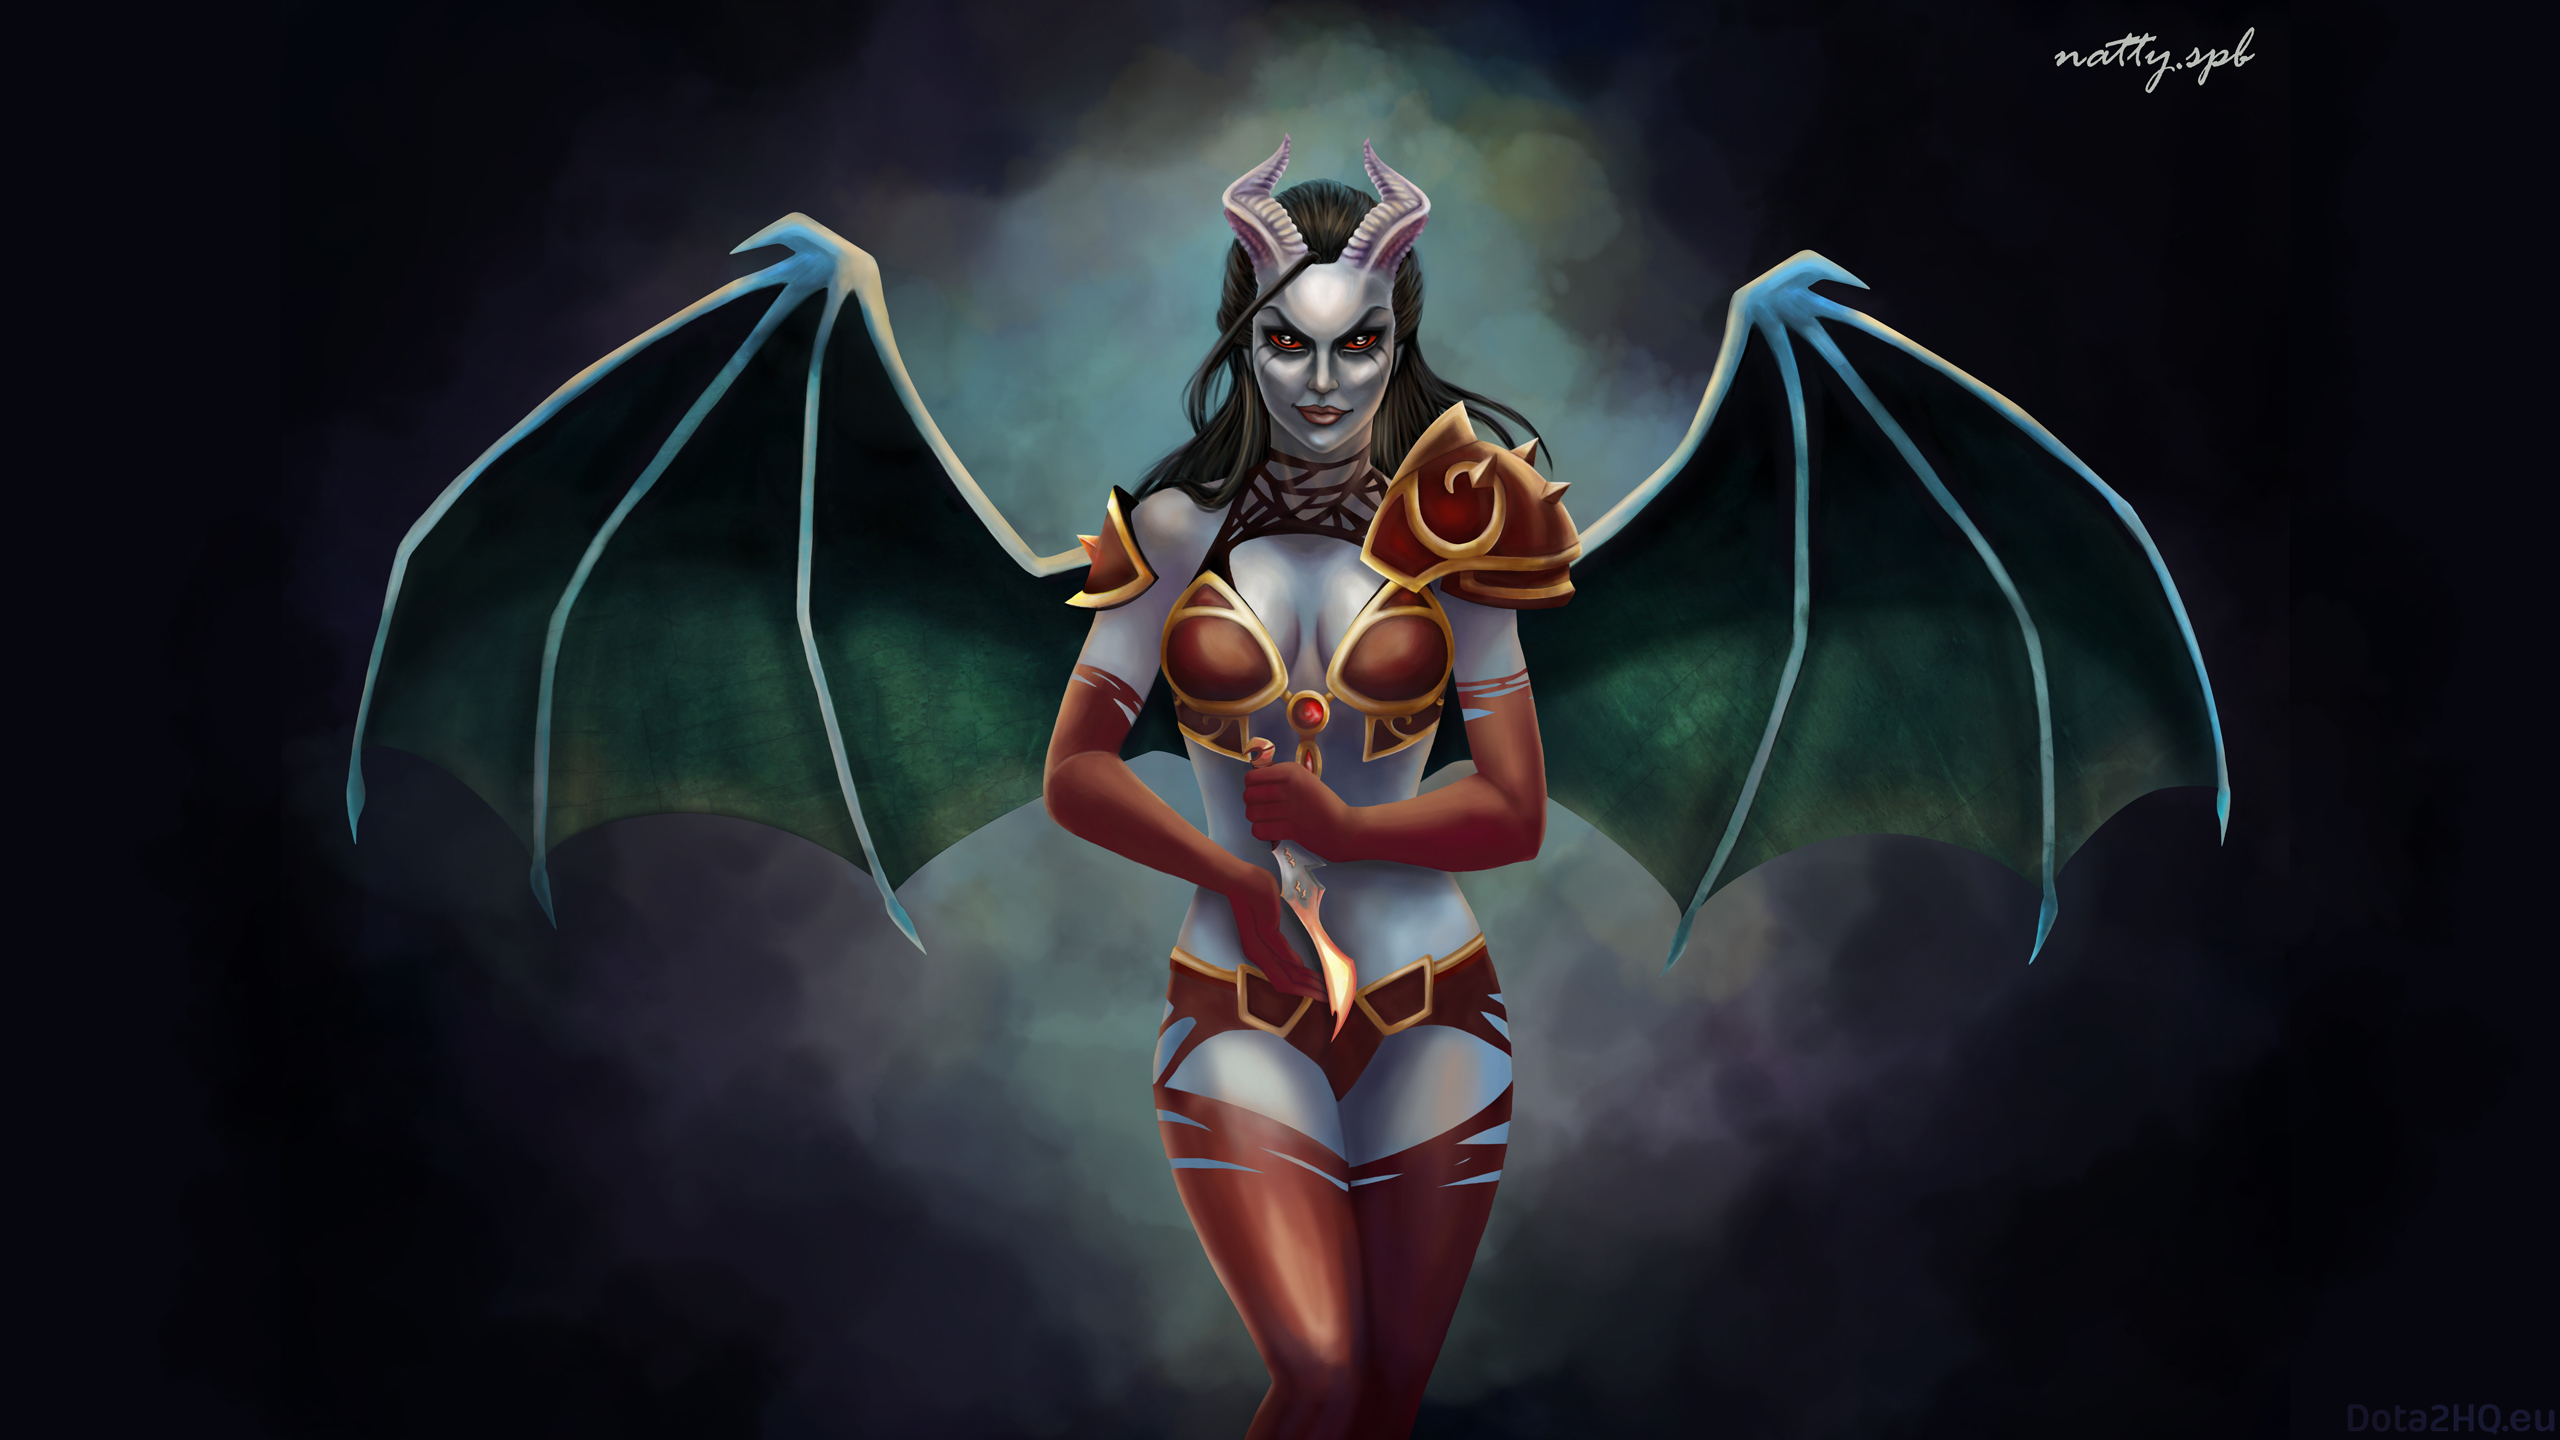 Heroes are illustrated on this Dota 2 wallpaper Queen of Pain 2560x1440